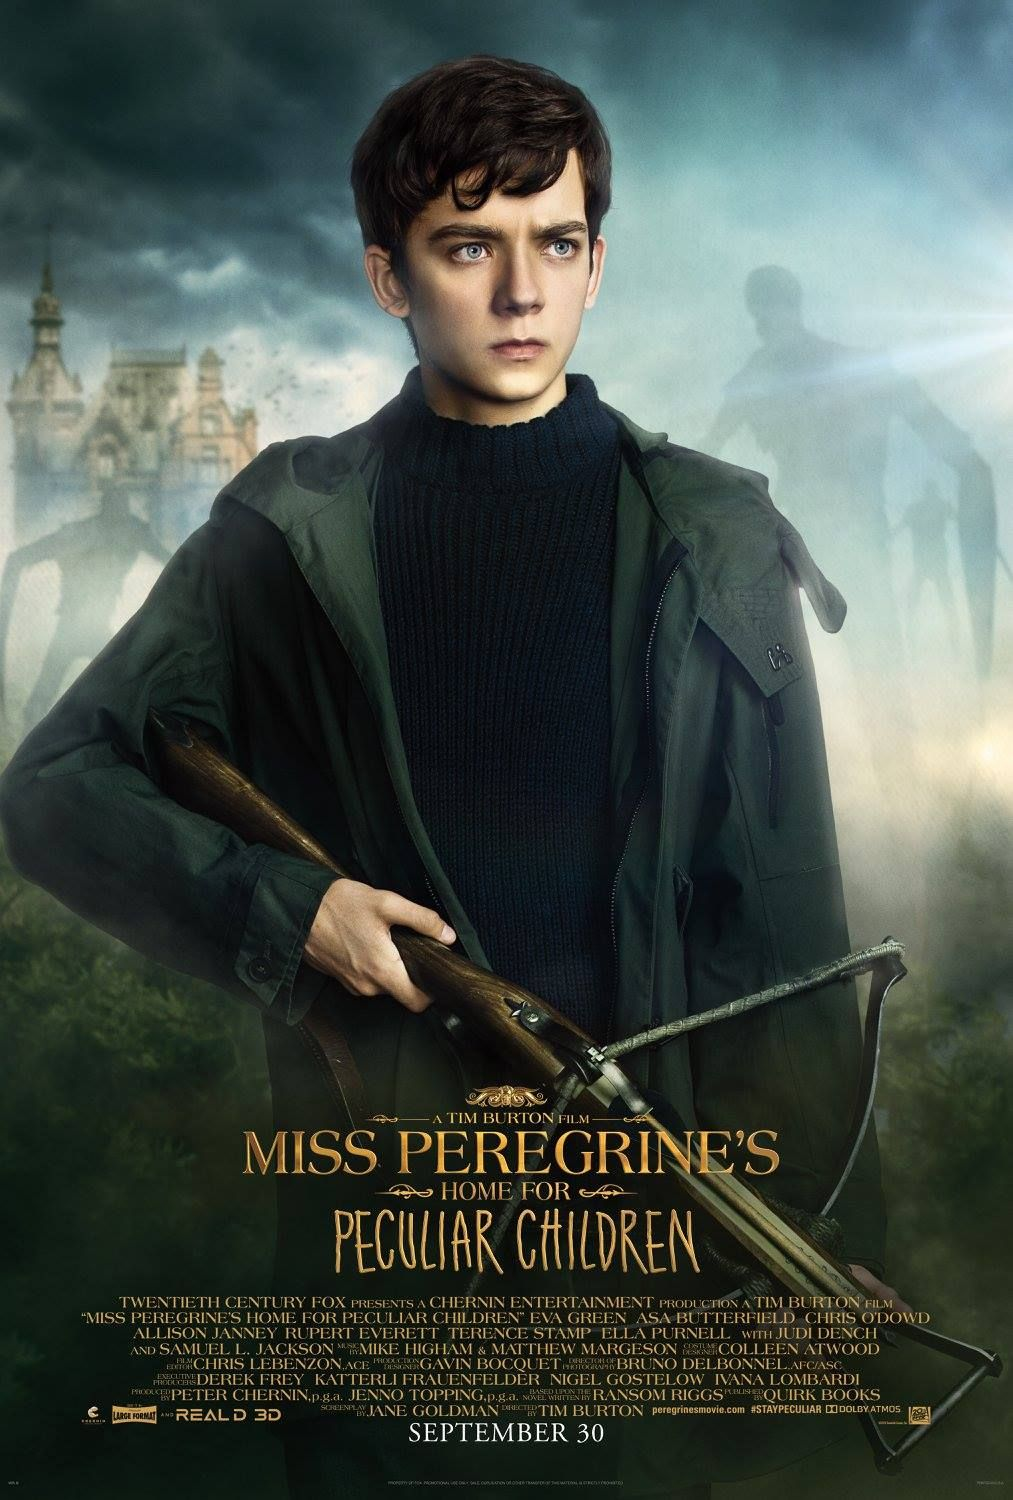 Home For Peculiar Children Character Posters Released Peculiar Children Movie Miss Peregrines Home For Peculiar Home For Peculiar Children